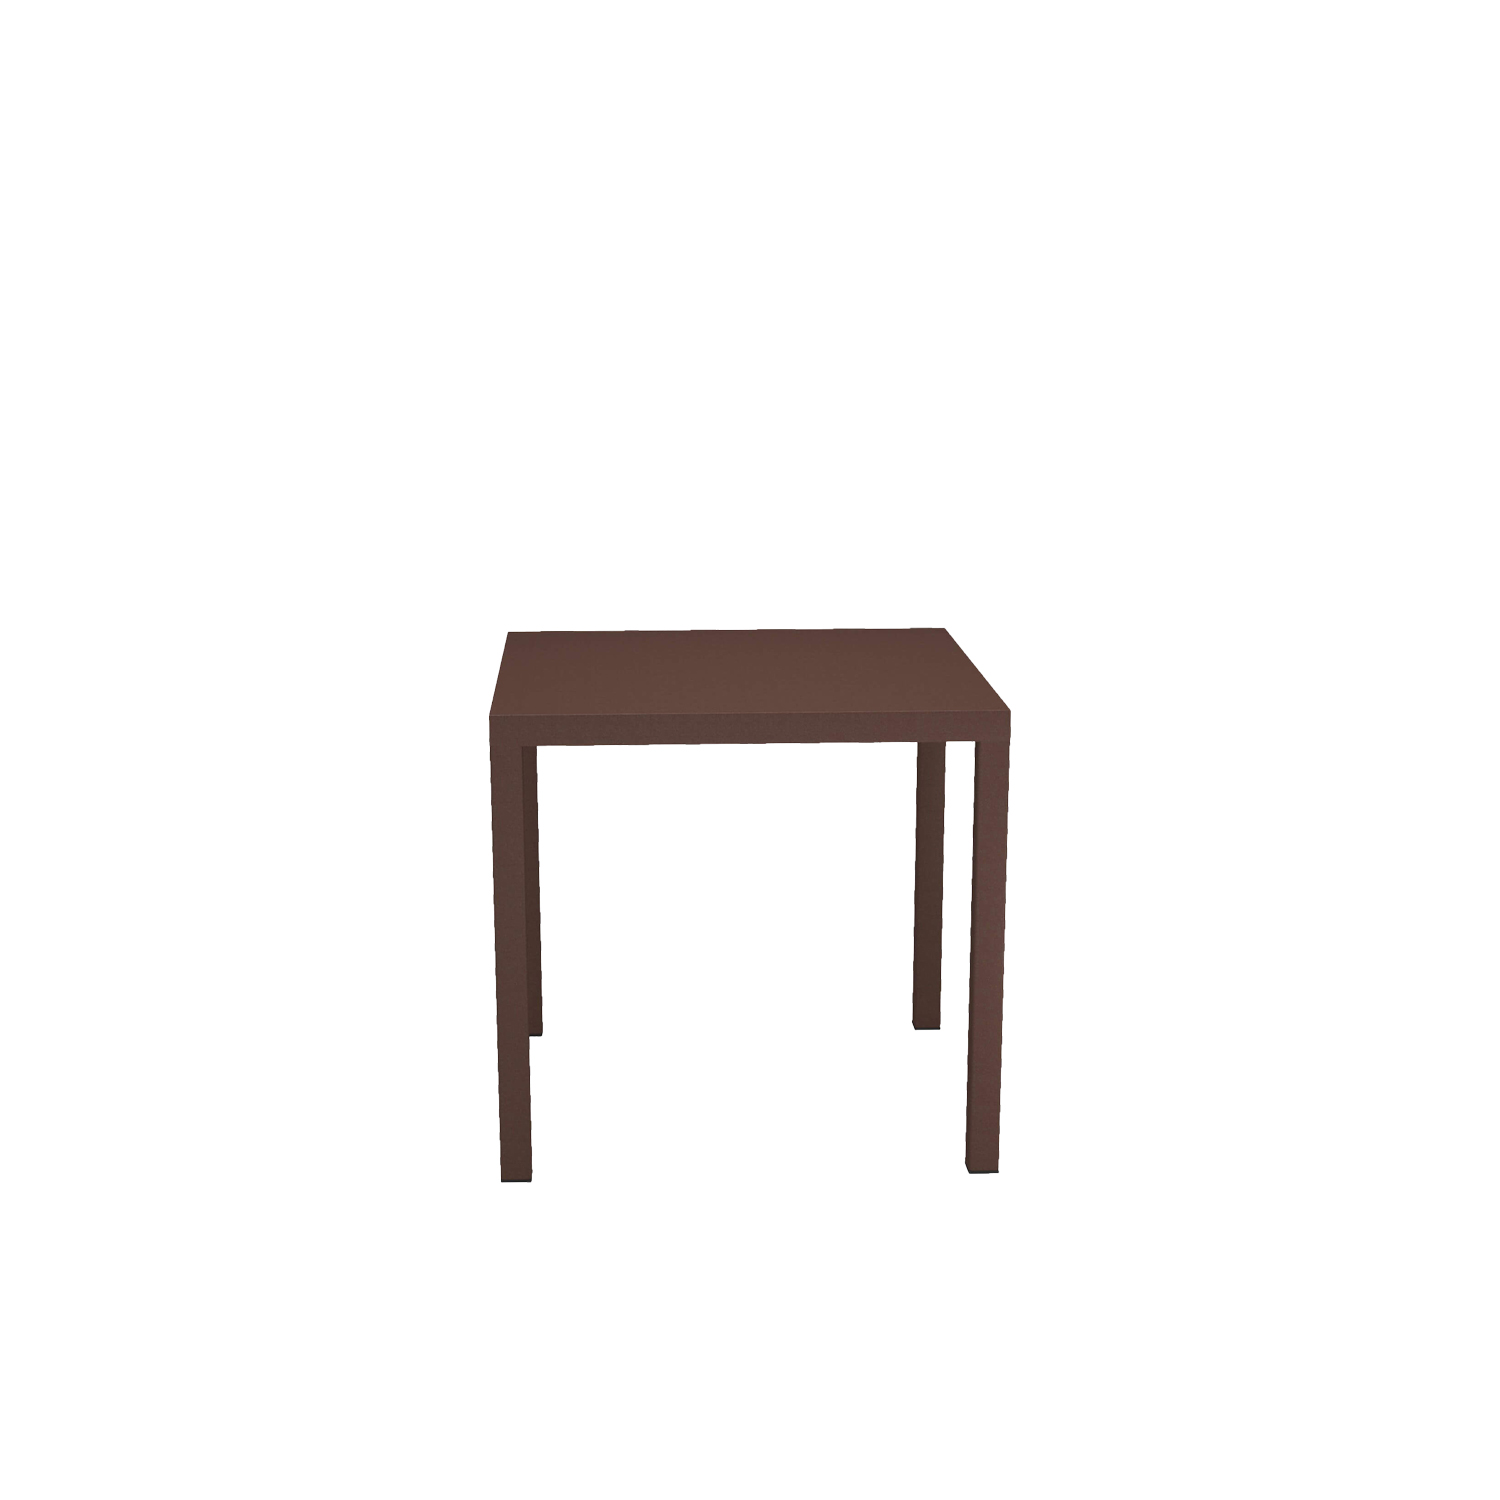 Nova Square Table - Set of 2 - This product is a set of two tables. The two sets can be one of two sizes and come in various colours. The Nova collection is characterised by small dimensions for maximum comfort, with unmistakable and original lines. The unusual armrest gives style and character to the armchair, bringing a bright note to a wide range of settings. The collection is completed with two square dining tables, whose clean lines enhance the unique design of the seats.   Matter of Stuff